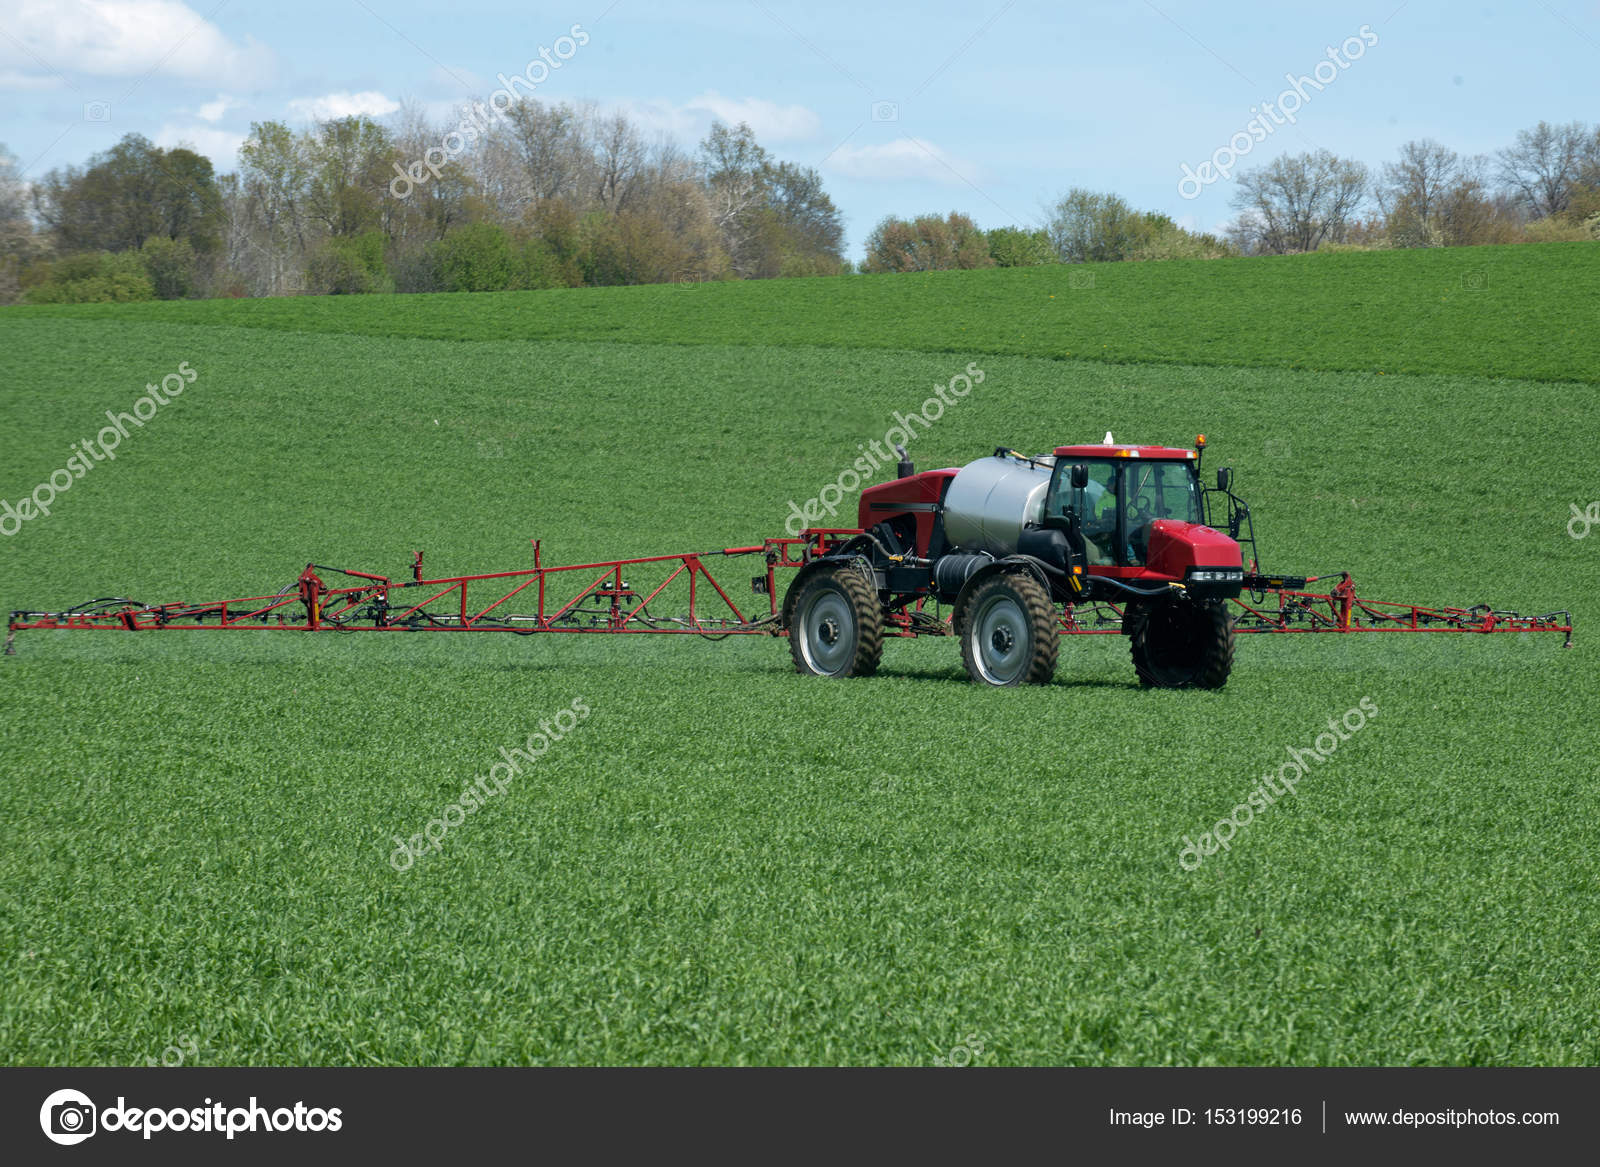 Tractor with agricultural sprayer machine — Stock Photo